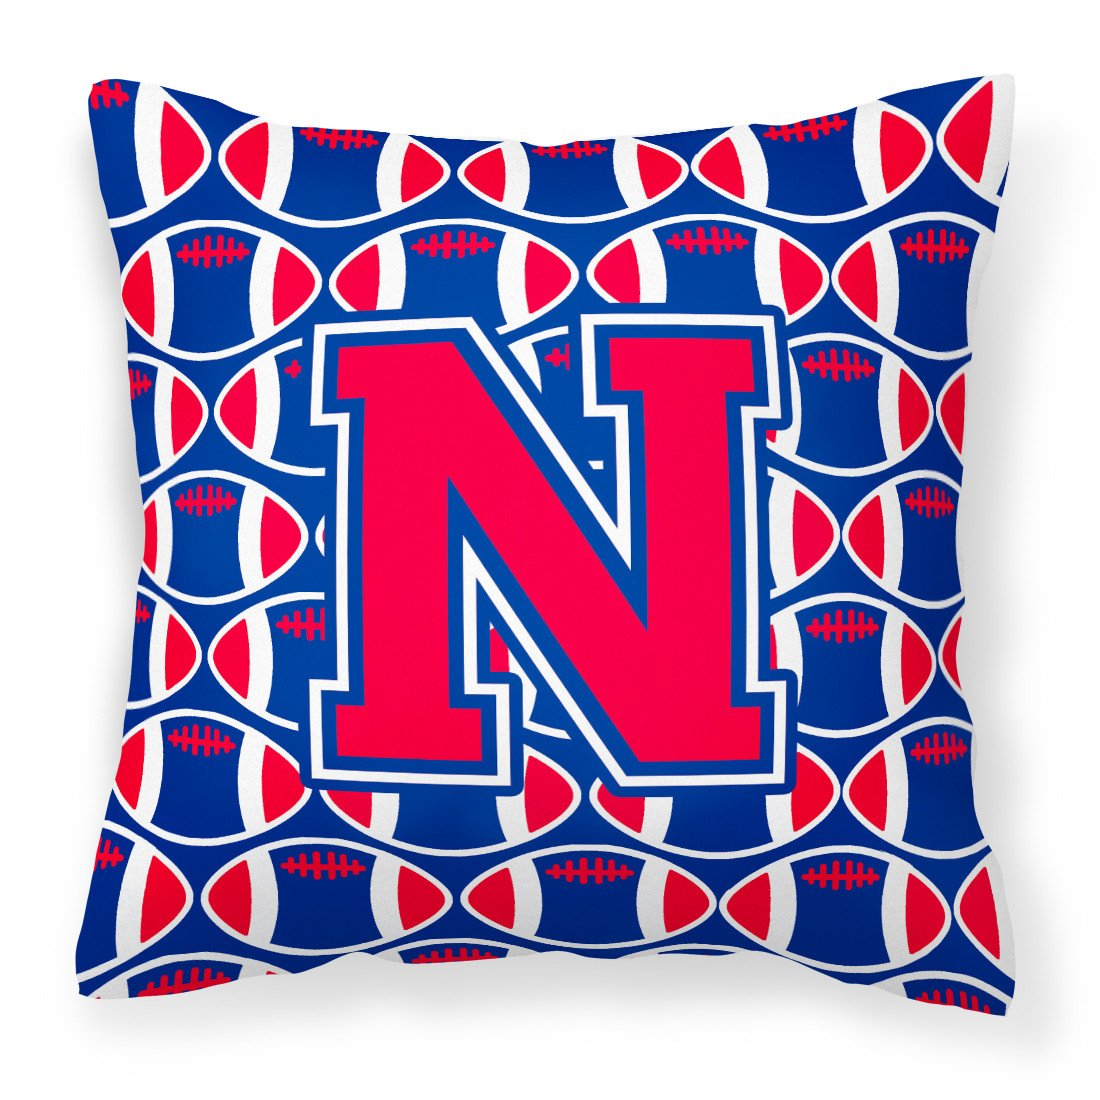 Letter N Football Harvard Crimson and Yale Blue Fabric Decorative Pillow CJ1076-NPW1414 by Caroline's Treasures